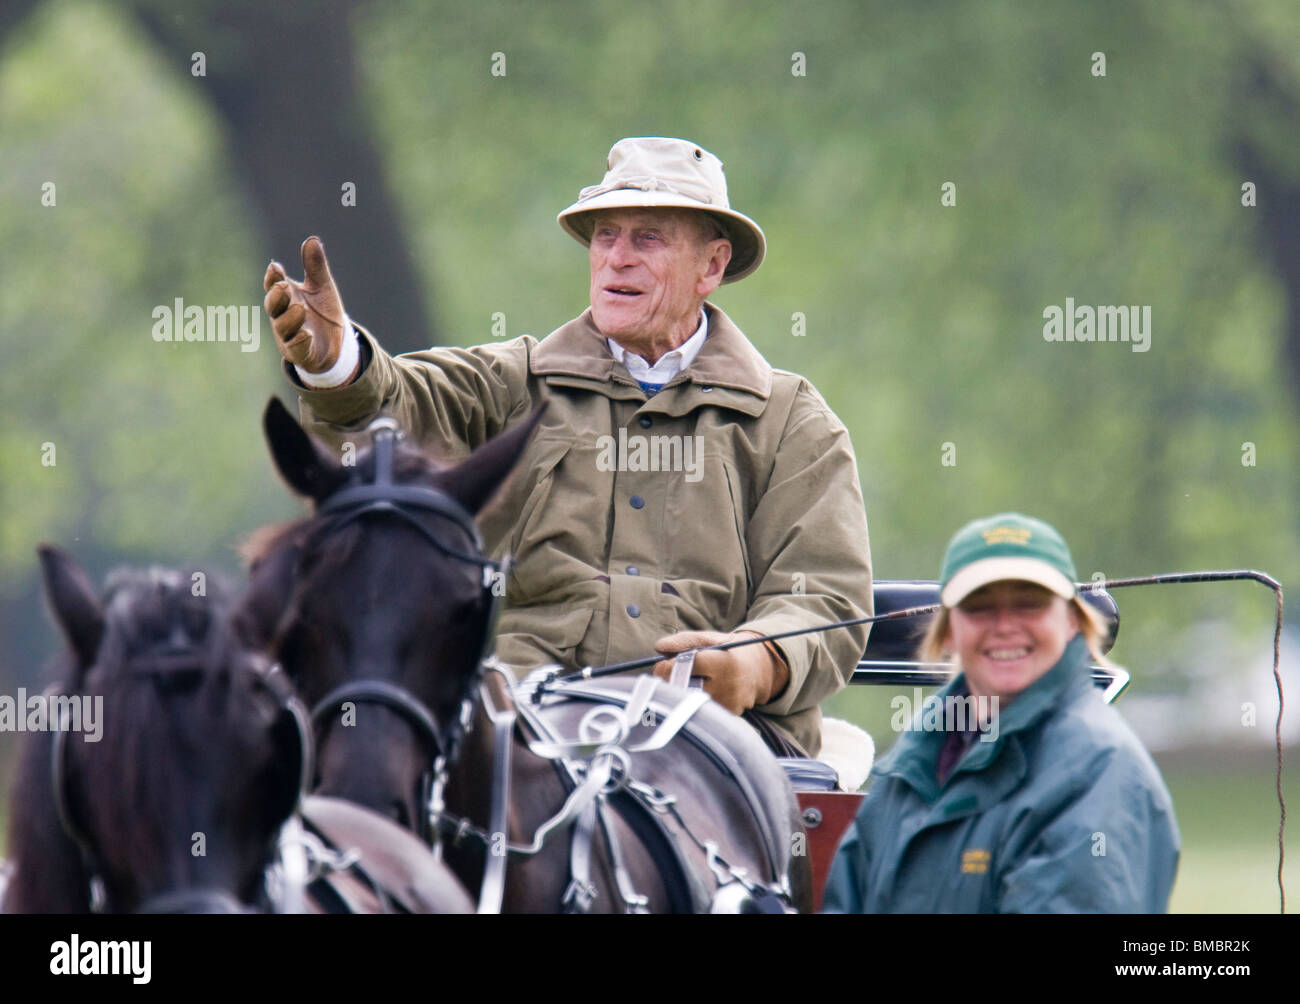 Prince Philip Riding His Carriage In Windsor Home Park And Viewing The Event At Royal Horse Show